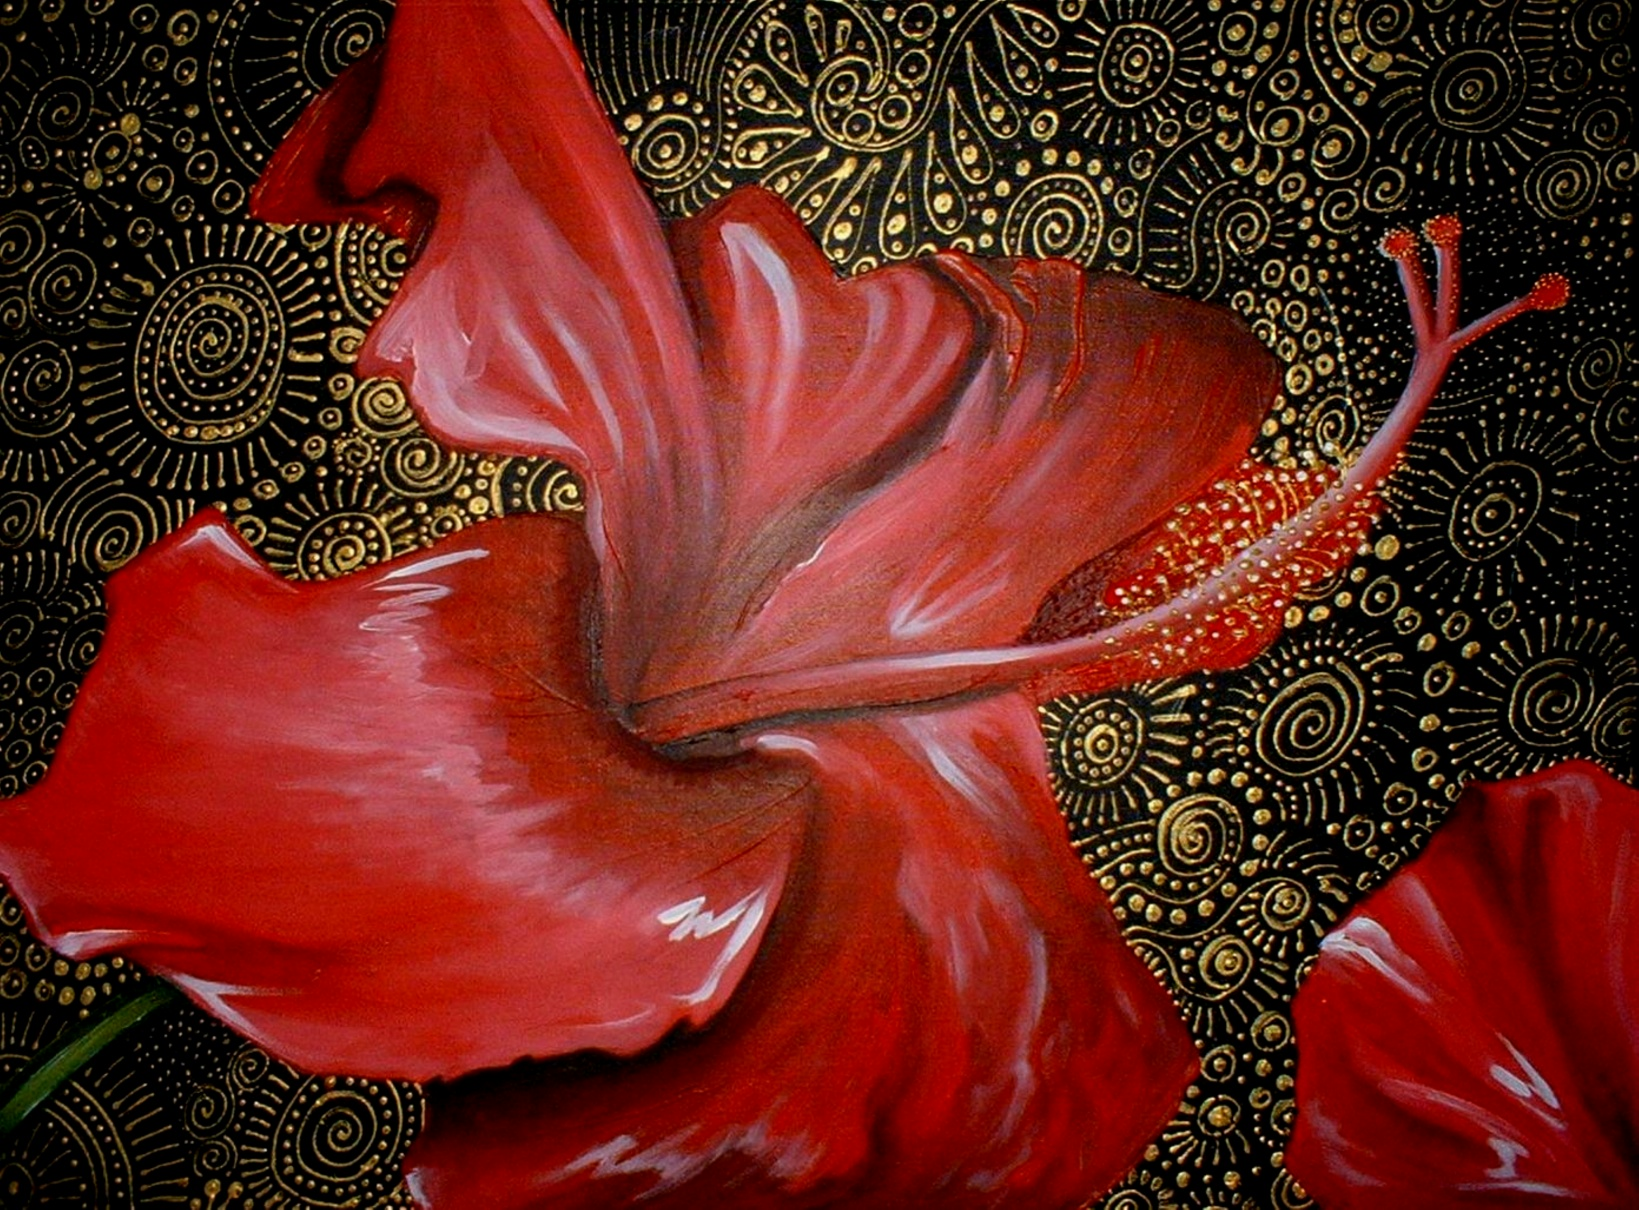 Red Hibiscus by Cherie Roe Dirksen lr